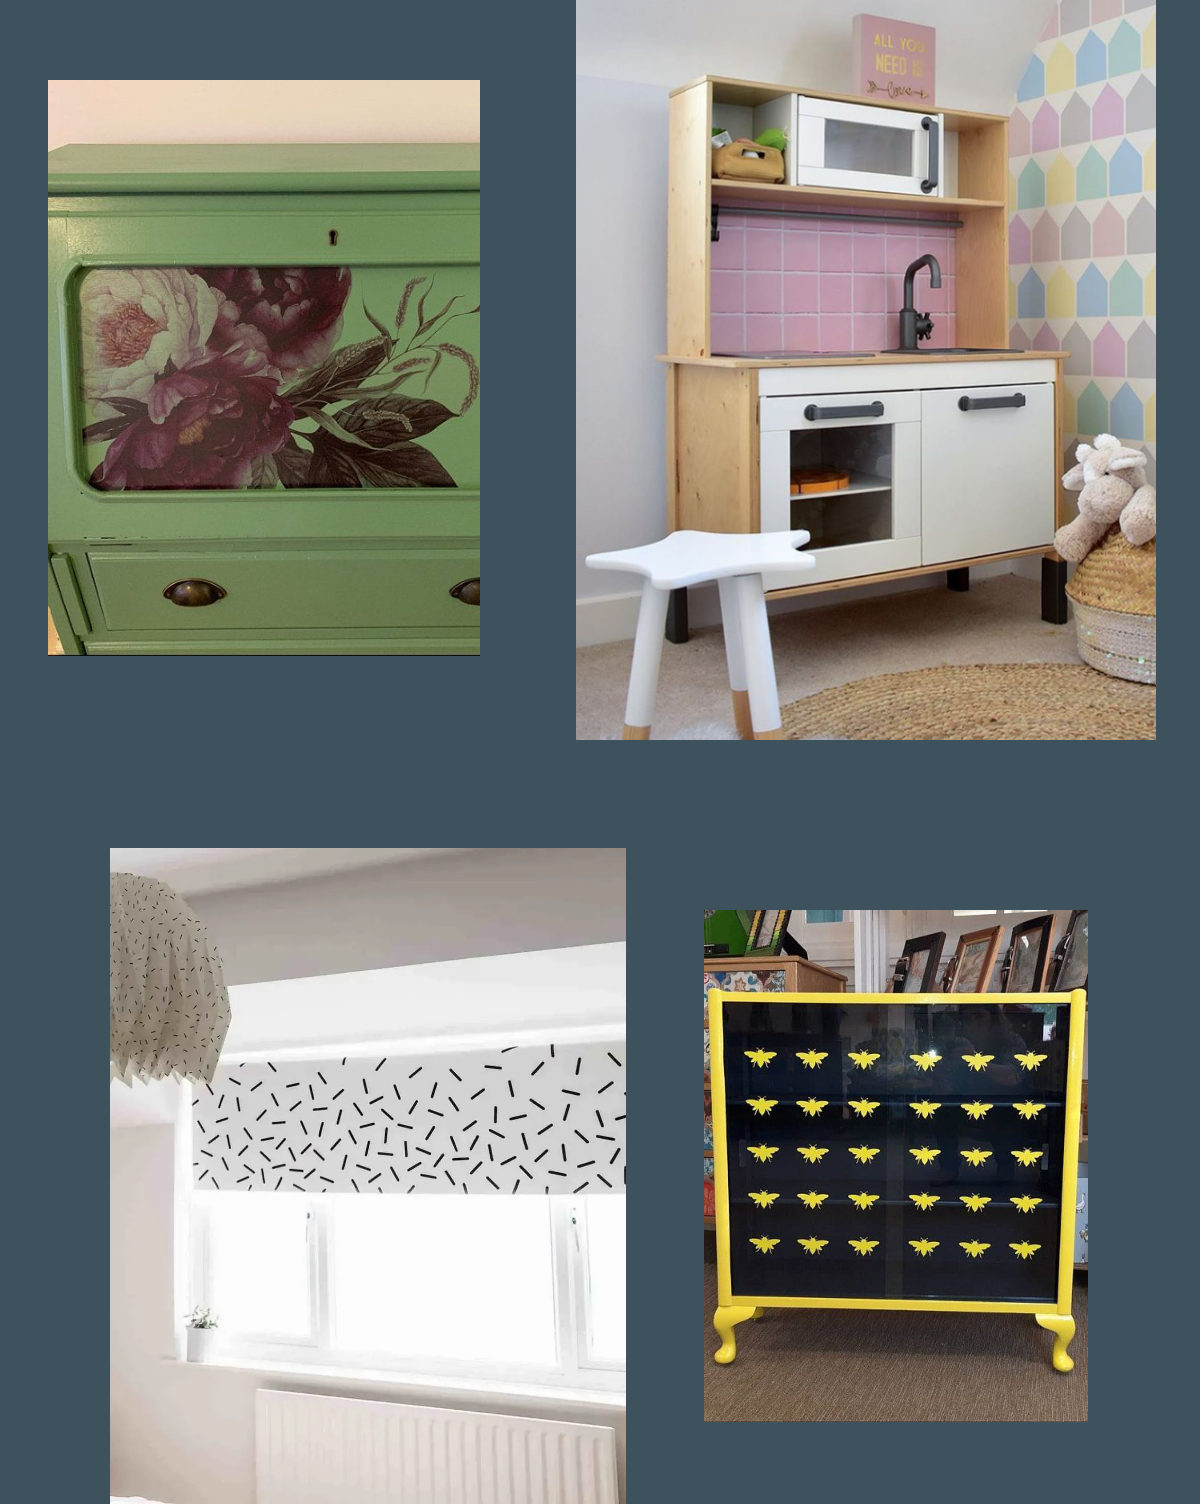 Furniture upcycling revamp using wall stickers